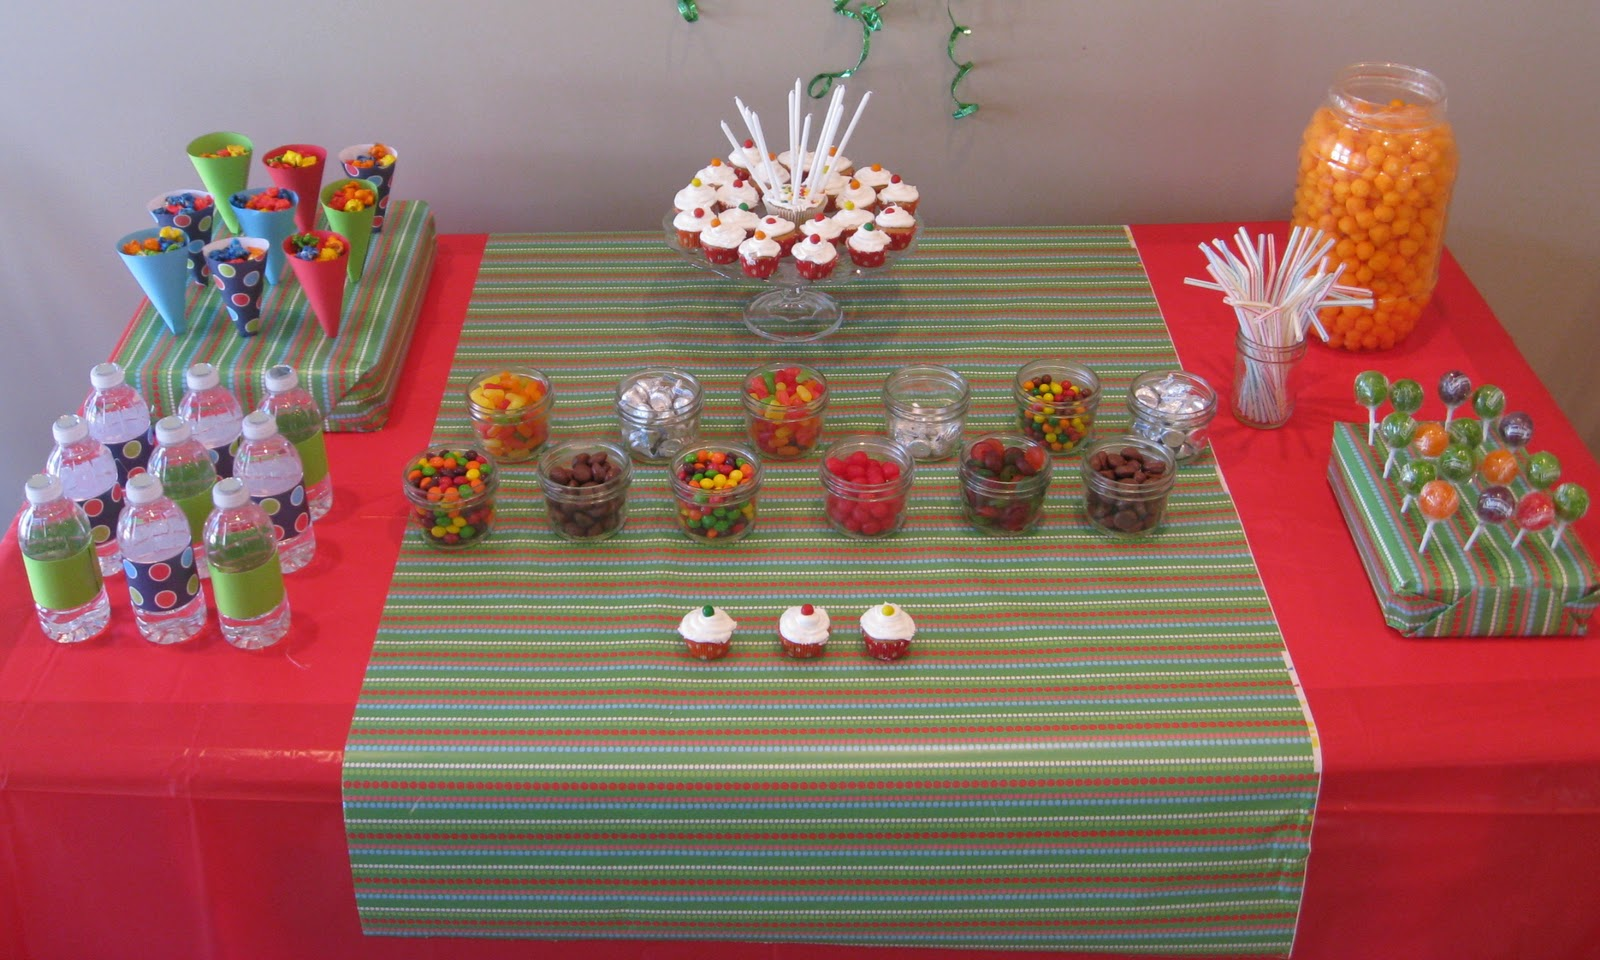 Homemade Decorations For Birthday Party Image Inspiration of Cake